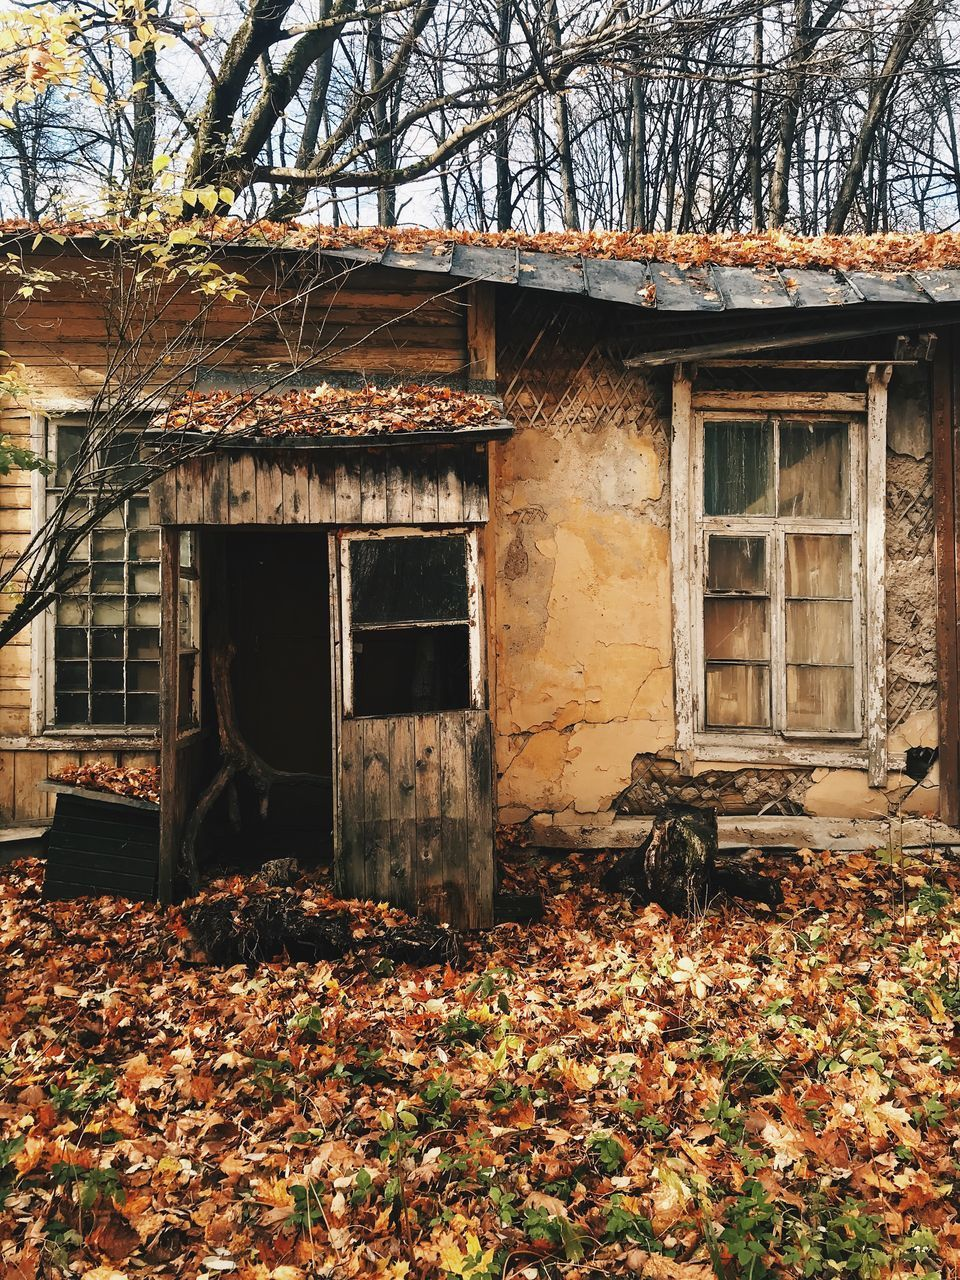 built structure, architecture, tree, building exterior, plant part, building, change, plant, leaf, autumn, nature, no people, day, house, abandoned, outdoors, residential district, old, falling, entrance, leaves